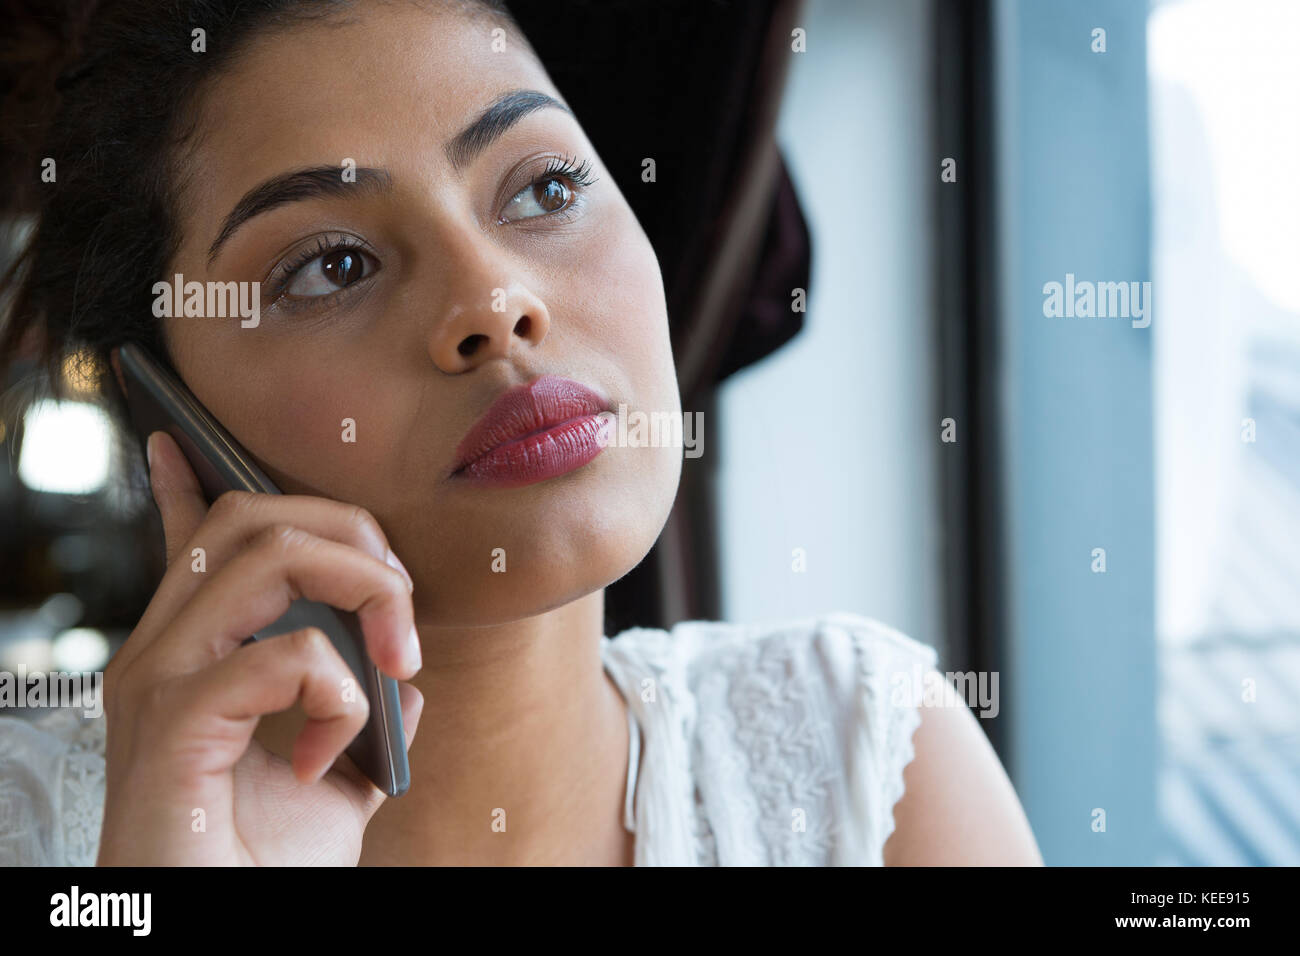 Woman talking on the phone at bar Stock Photo